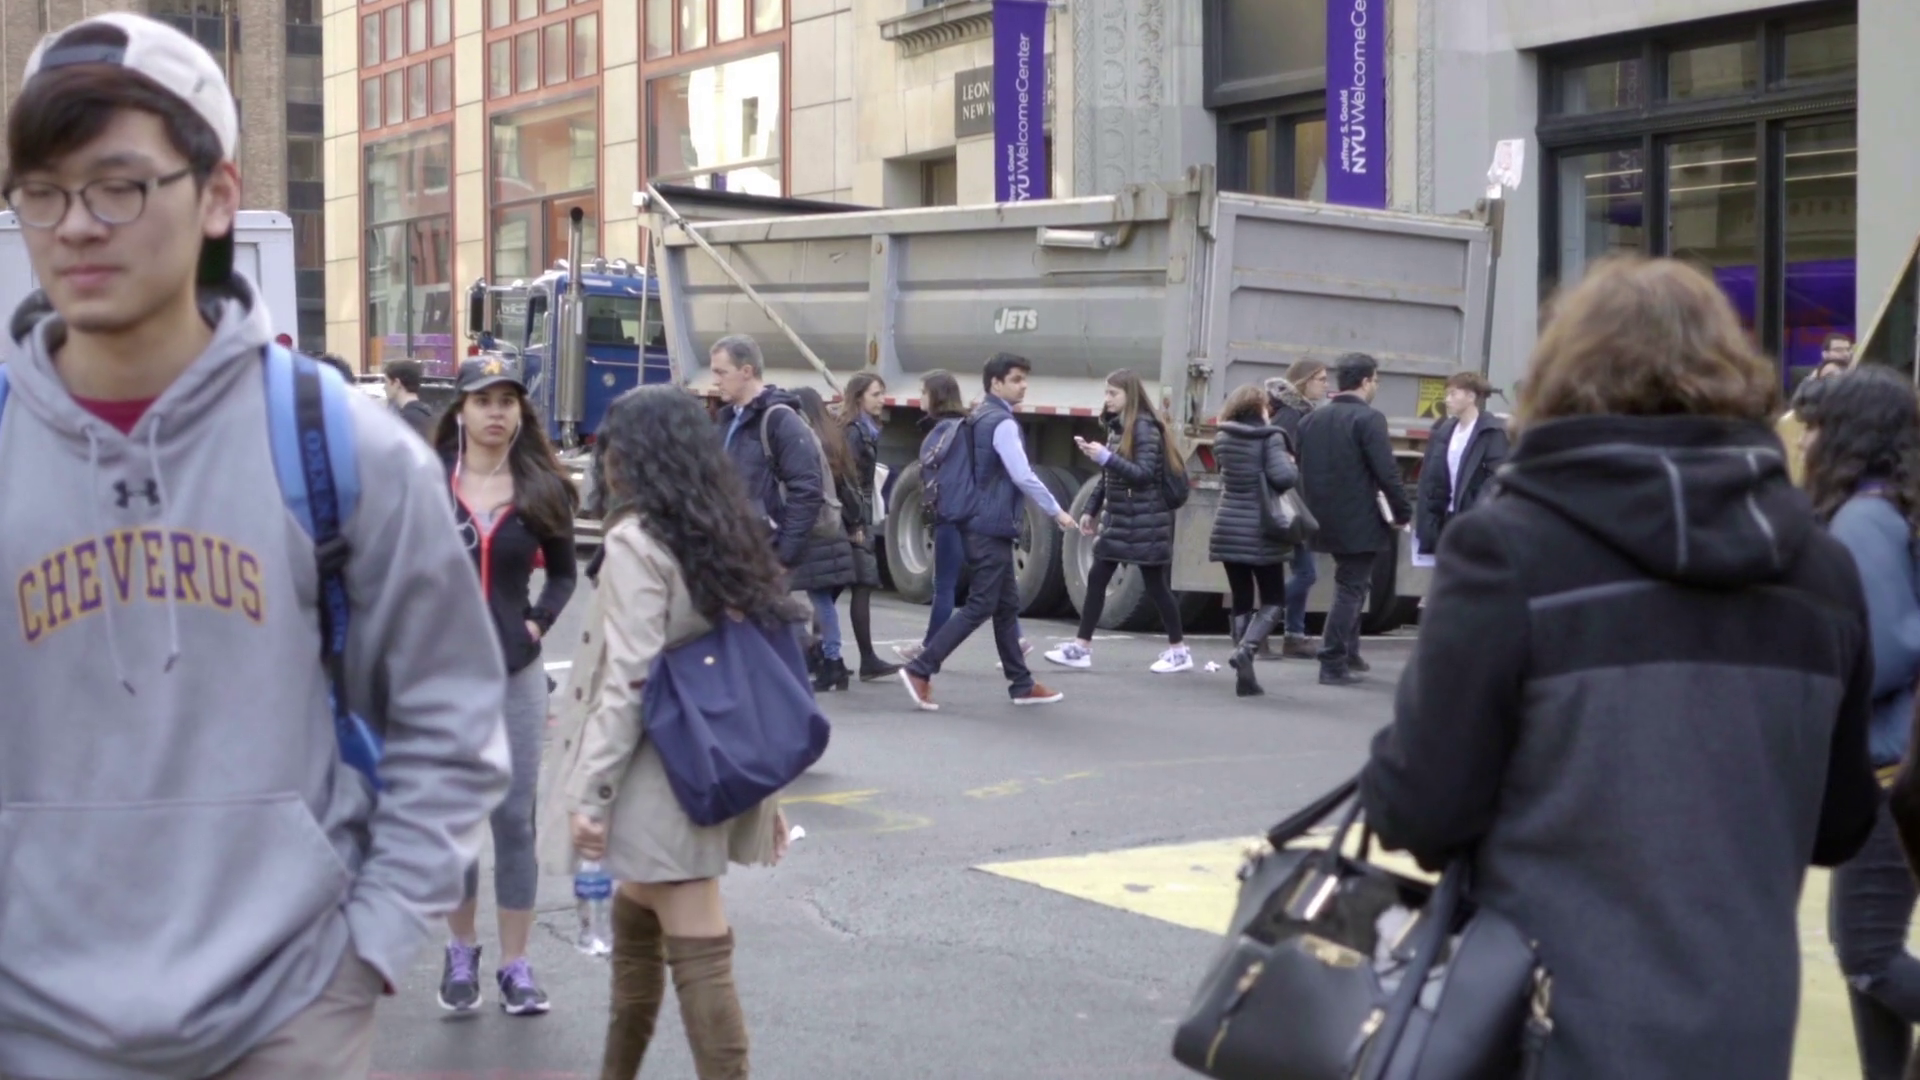 People NYU Students Walking Crowded Street Cold Winter Day Slow Motion NYC  Stock Video Footage - VideoBlocks - People In Cold Winter PNG